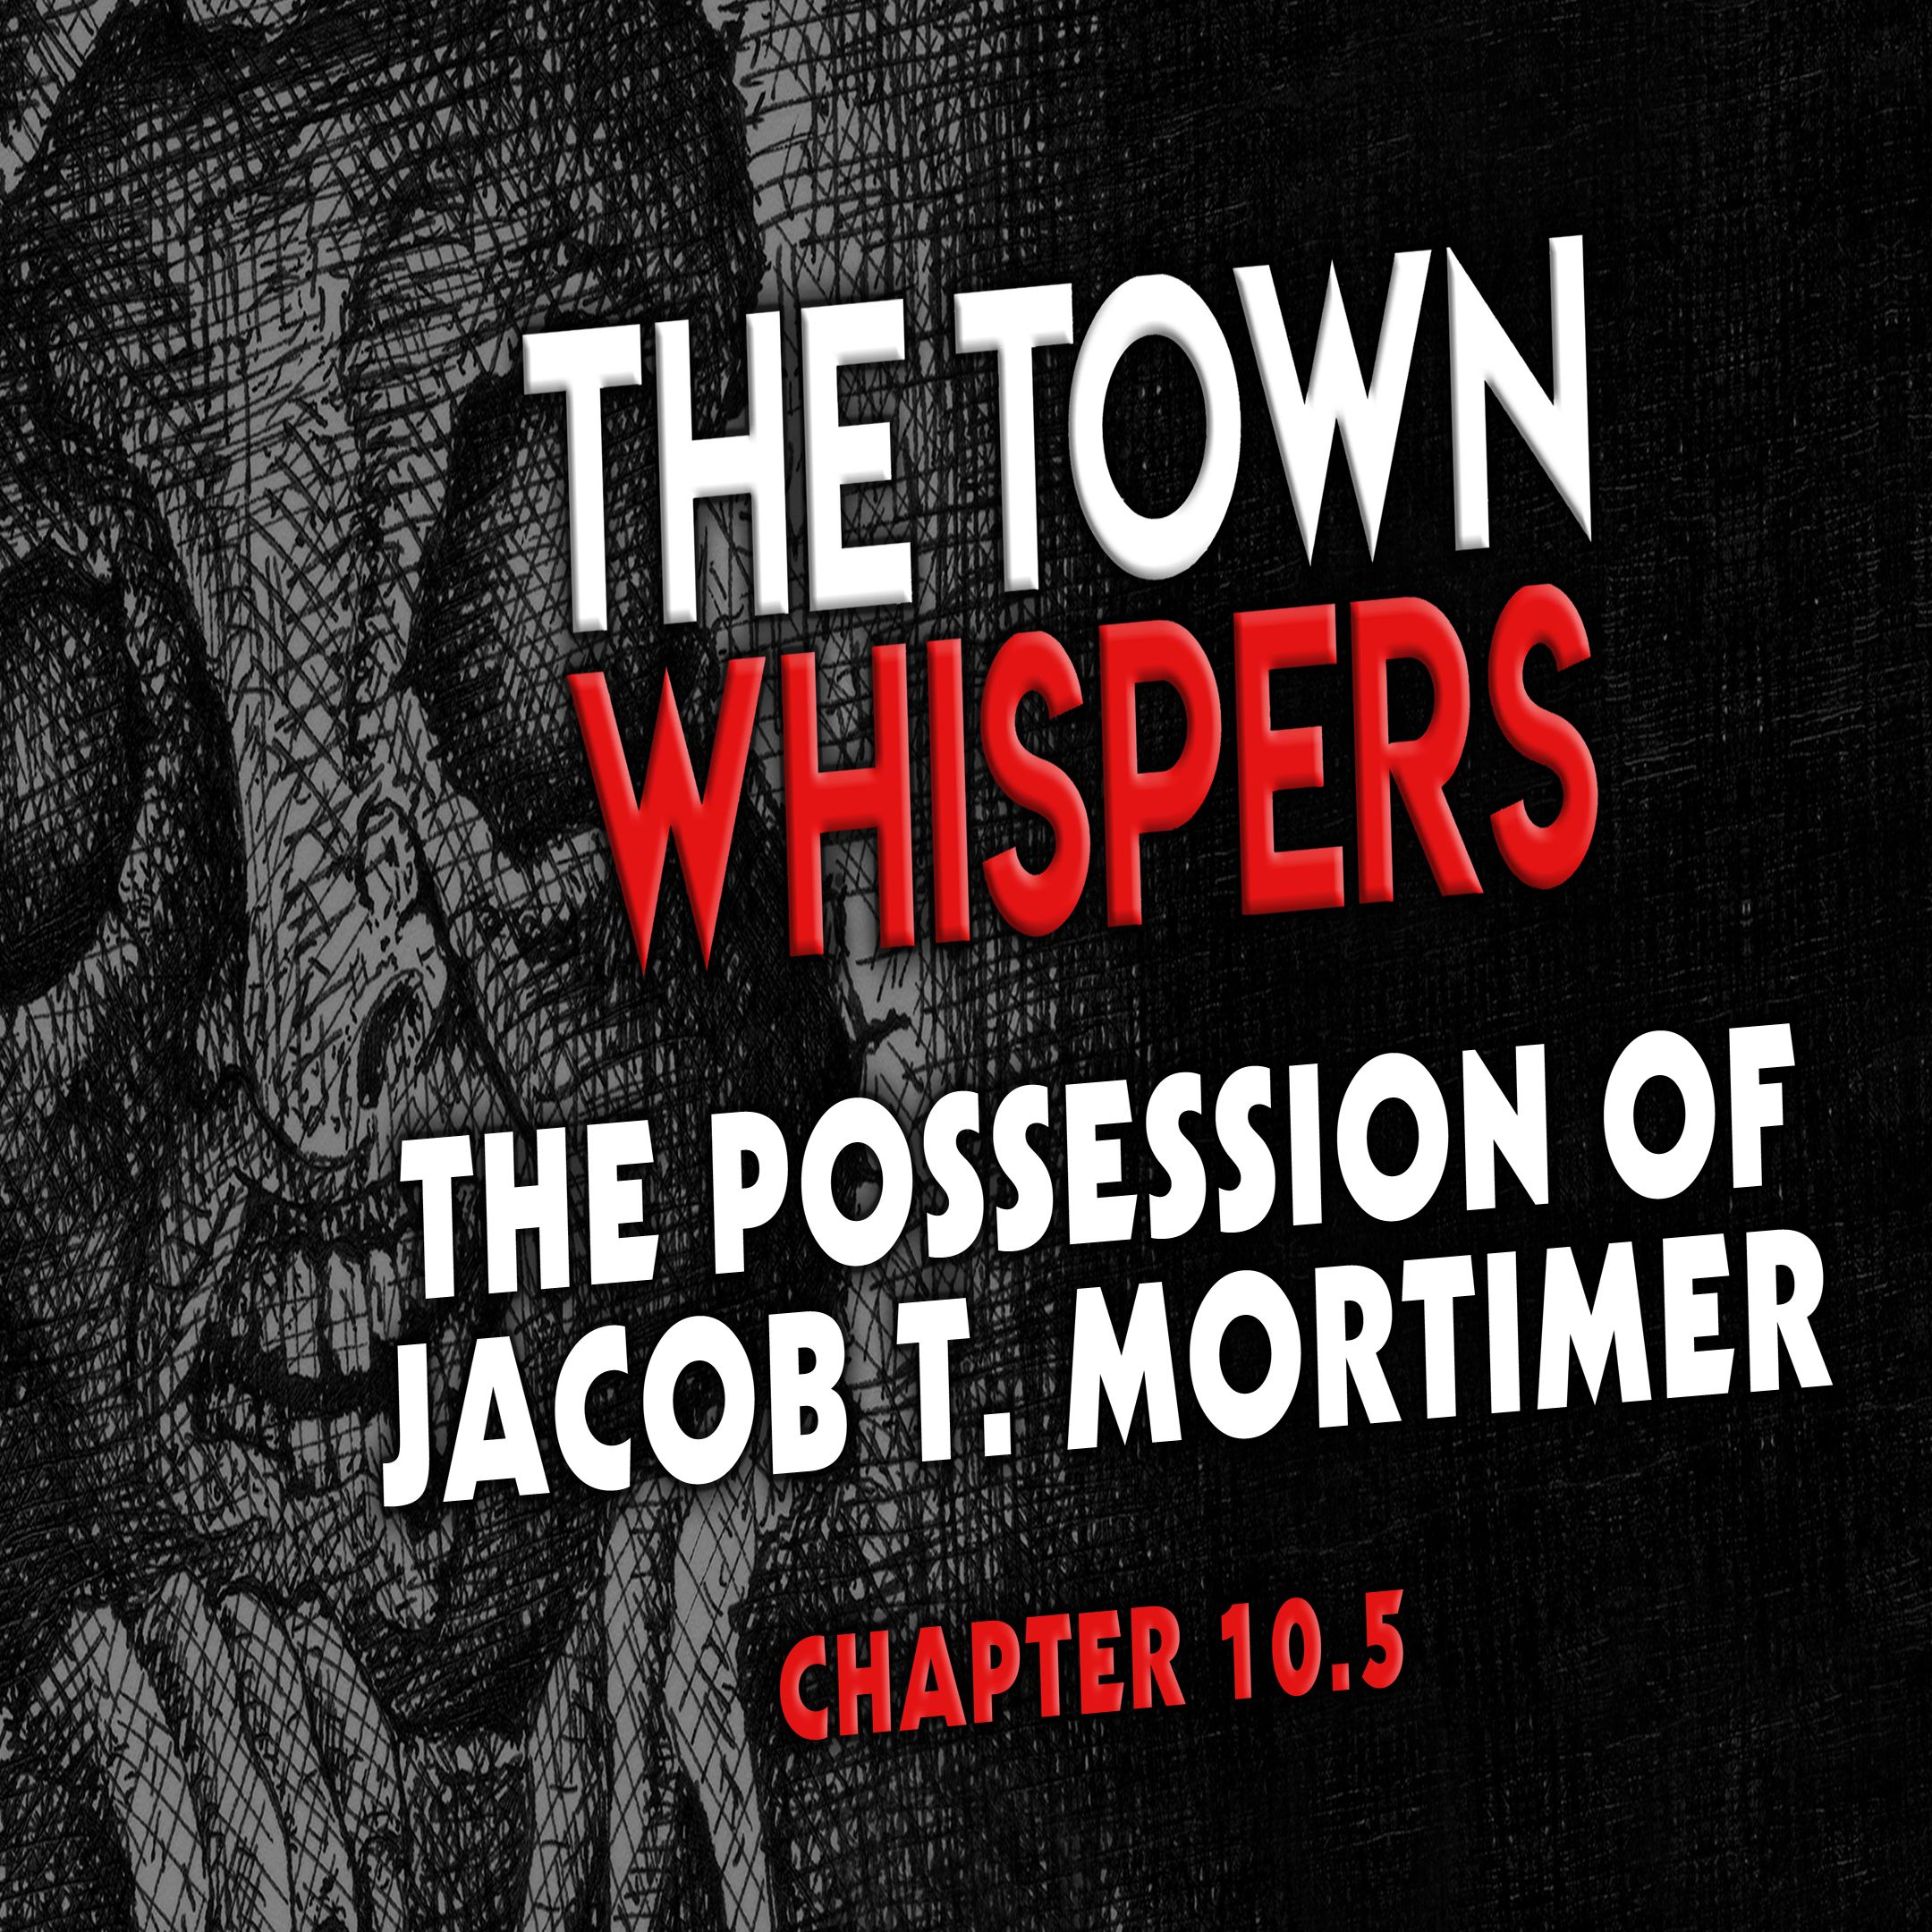 Chapter 10.5: The Possession of Jacob T. Mortimer